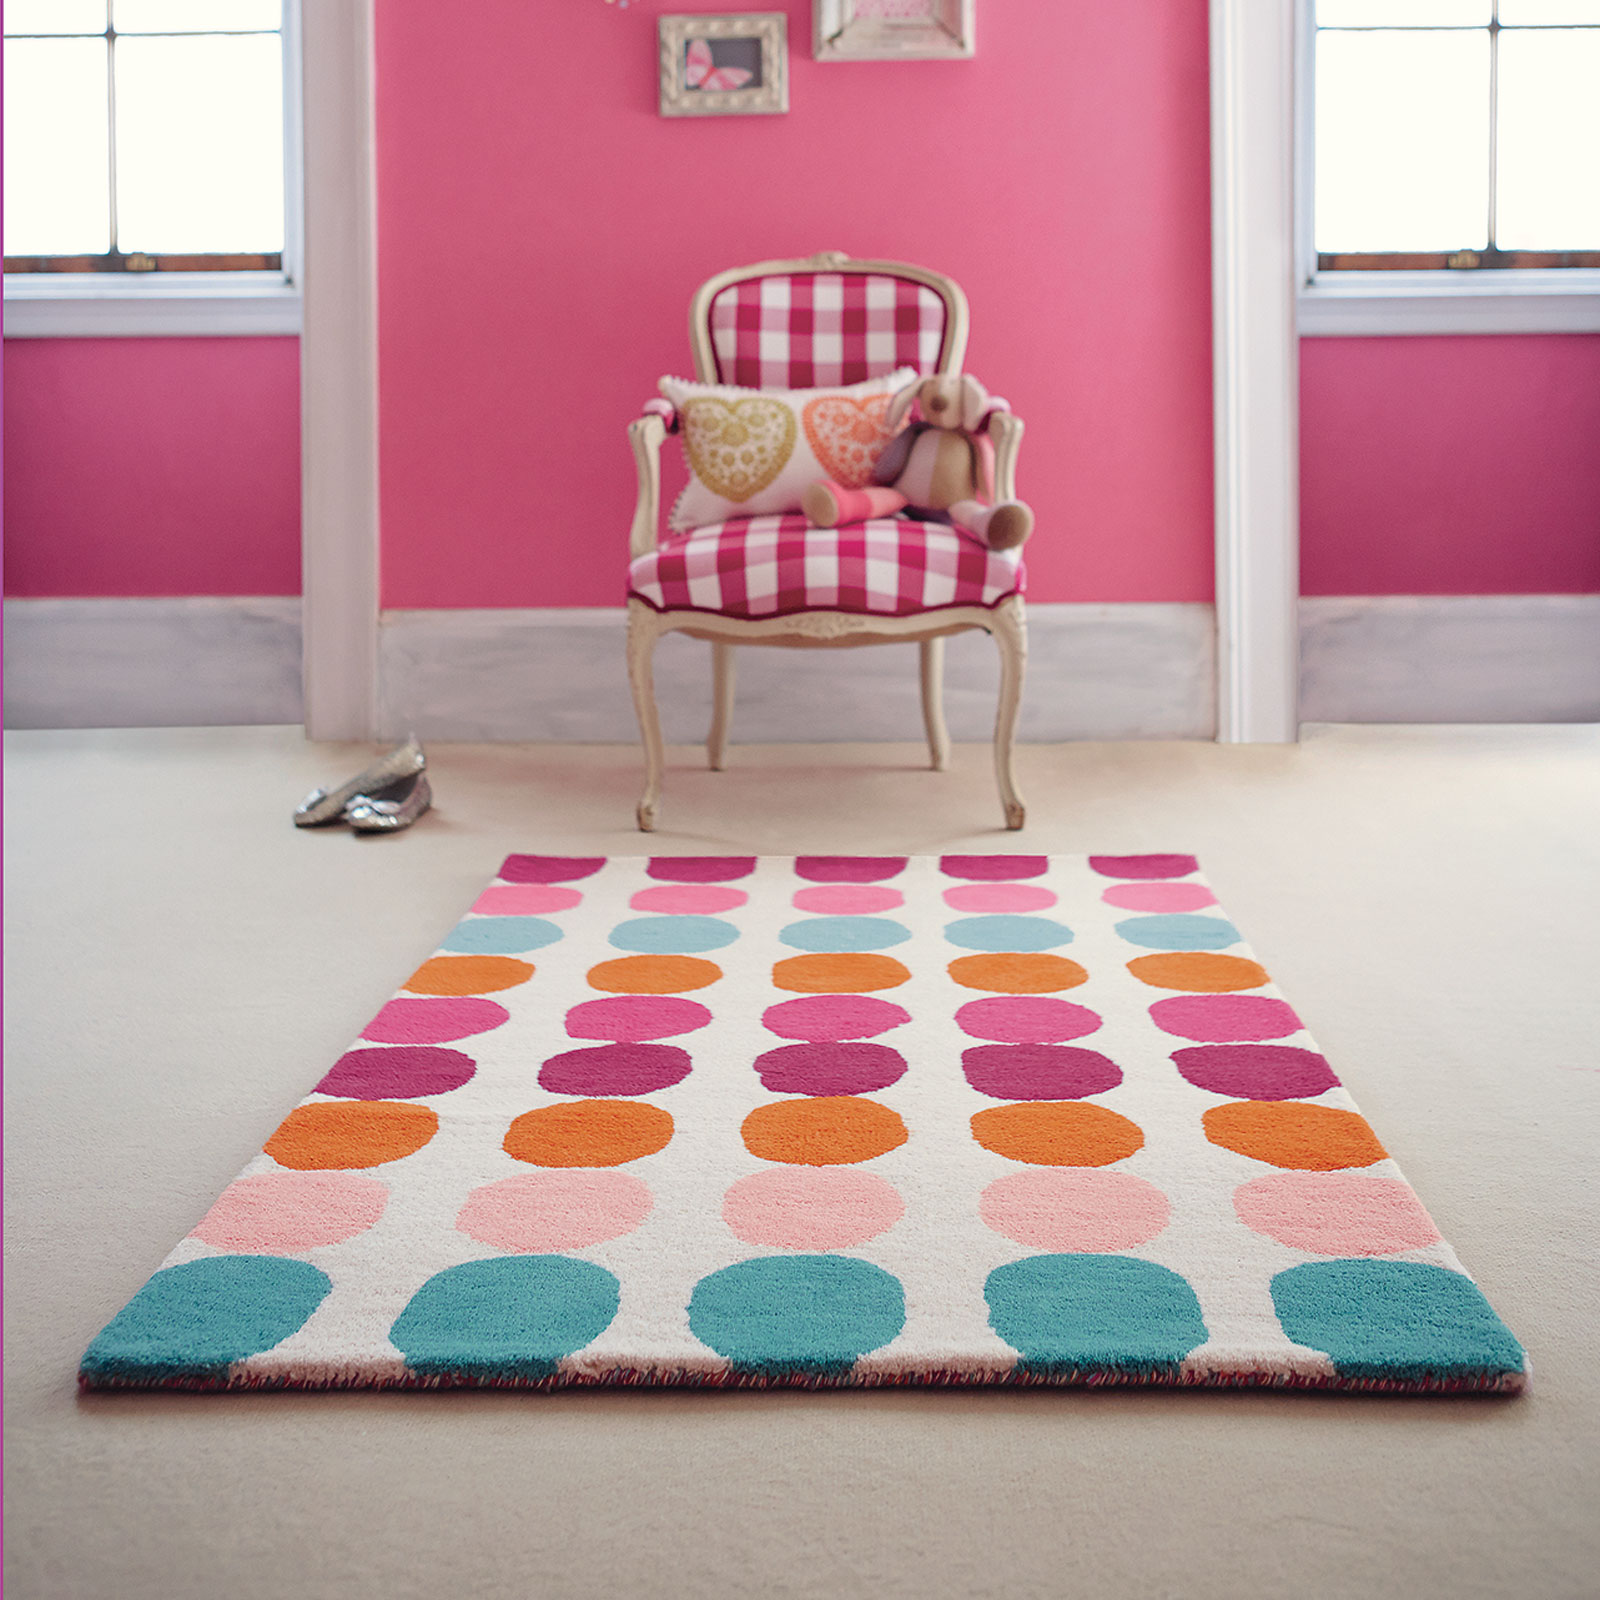 Abacus Rugs 42102 Calypso by Harlequin Kids